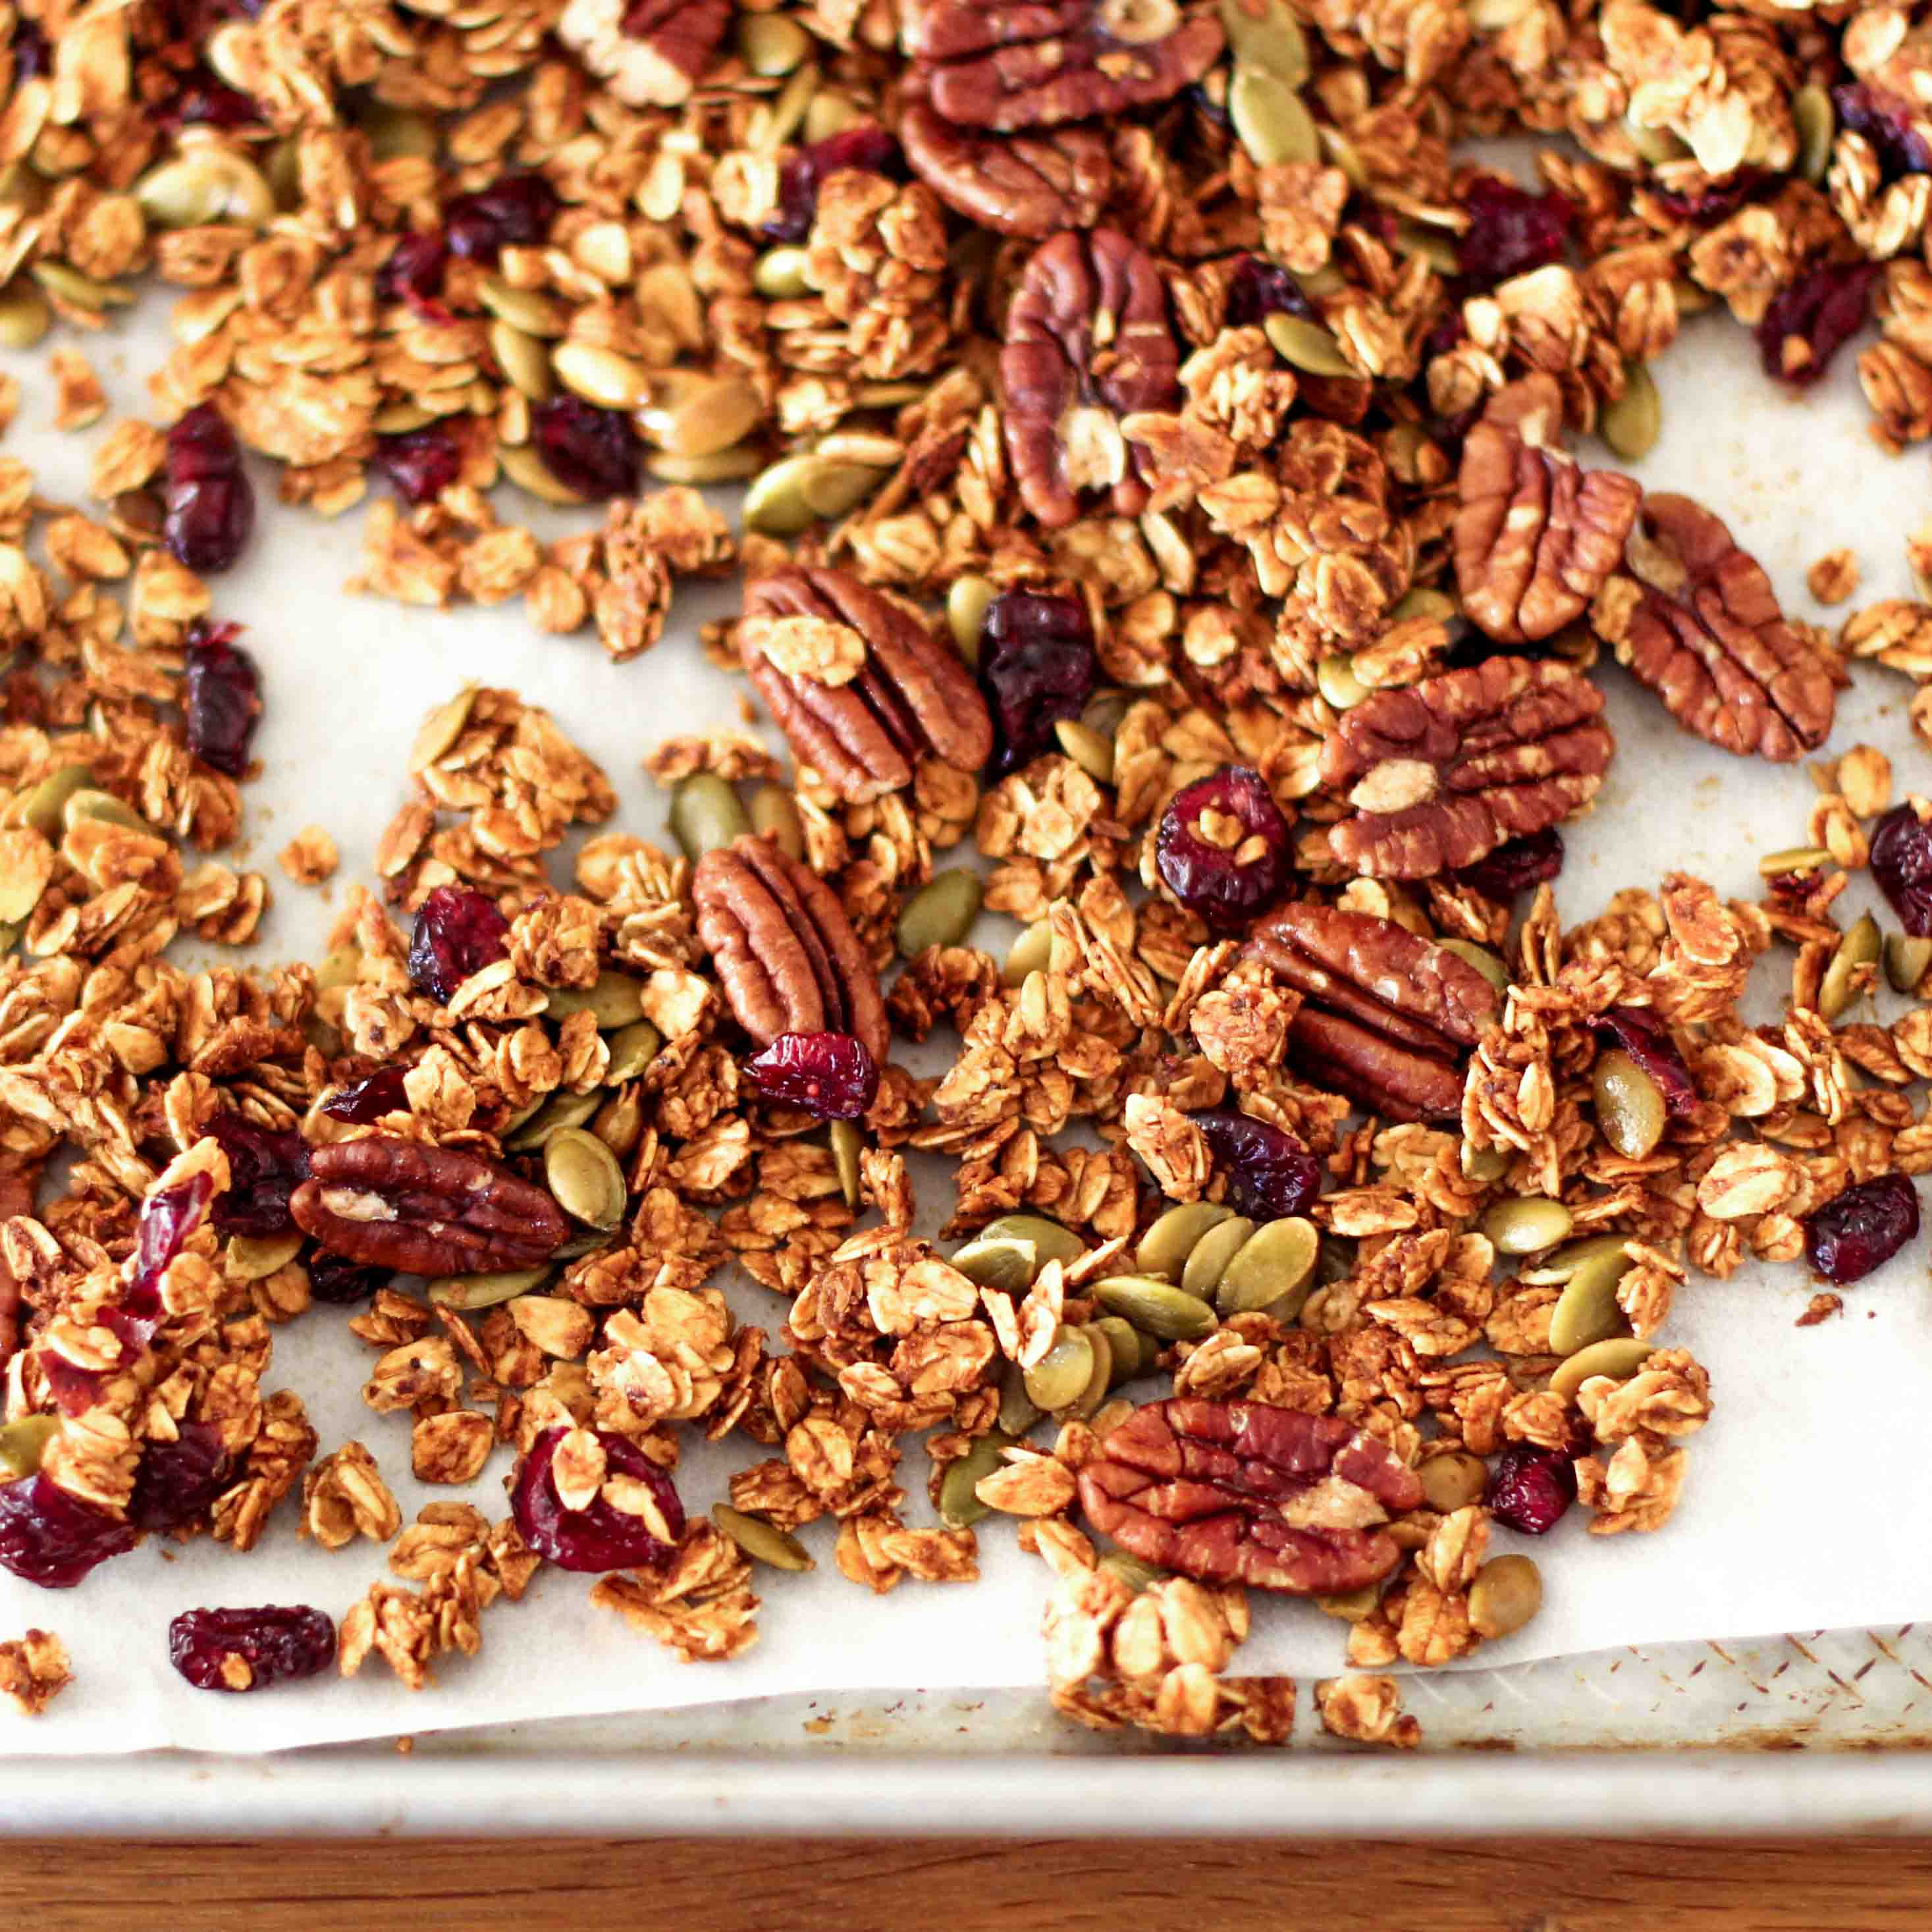 <p>This recipe bakes oats at a low oven temperature with prune juice concentrate in place of oil. The result is a granola so crunchy and caramelized that no one misses the extra fat.</p>